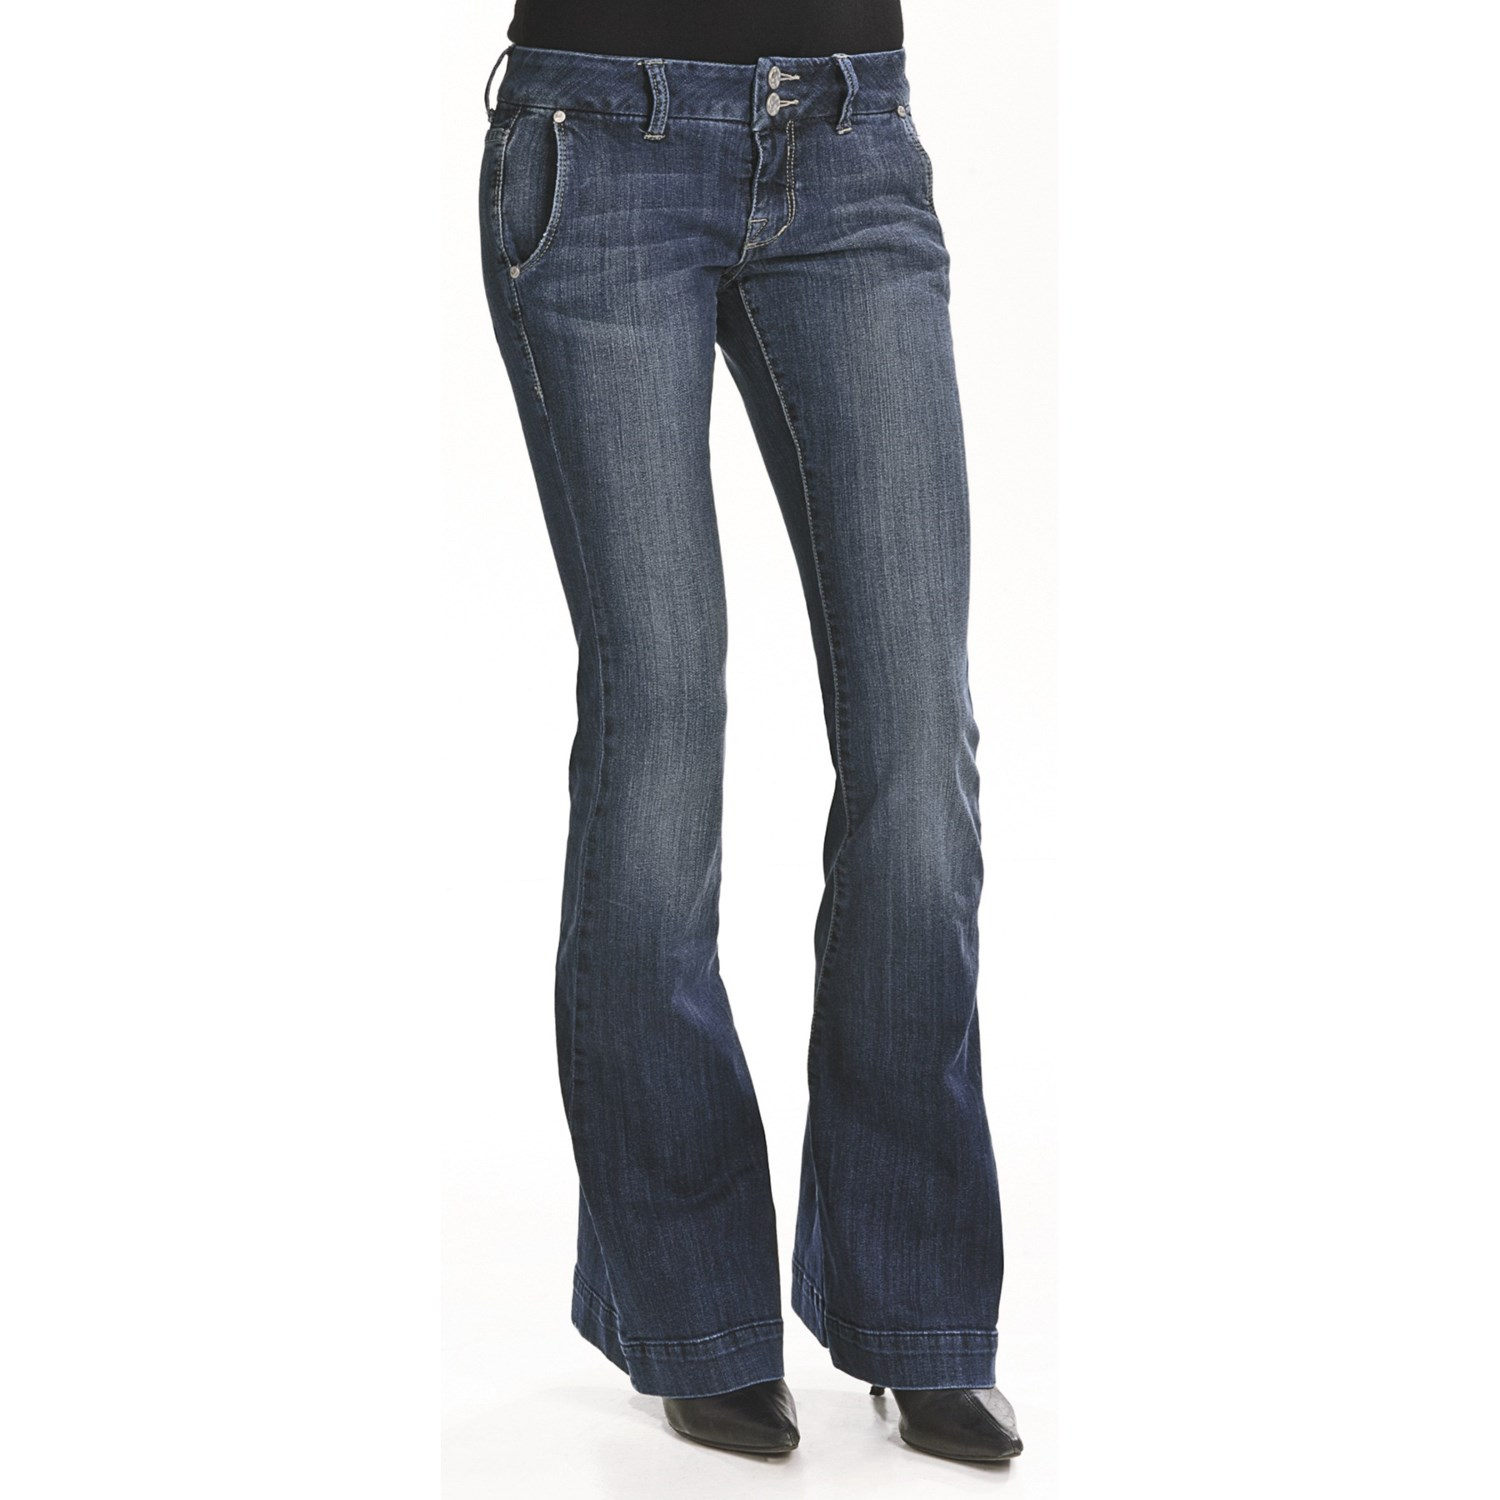 Shop womens denim jeans at Neiman Marcus, where you will find free shipping on the latest in fashion from top designers.